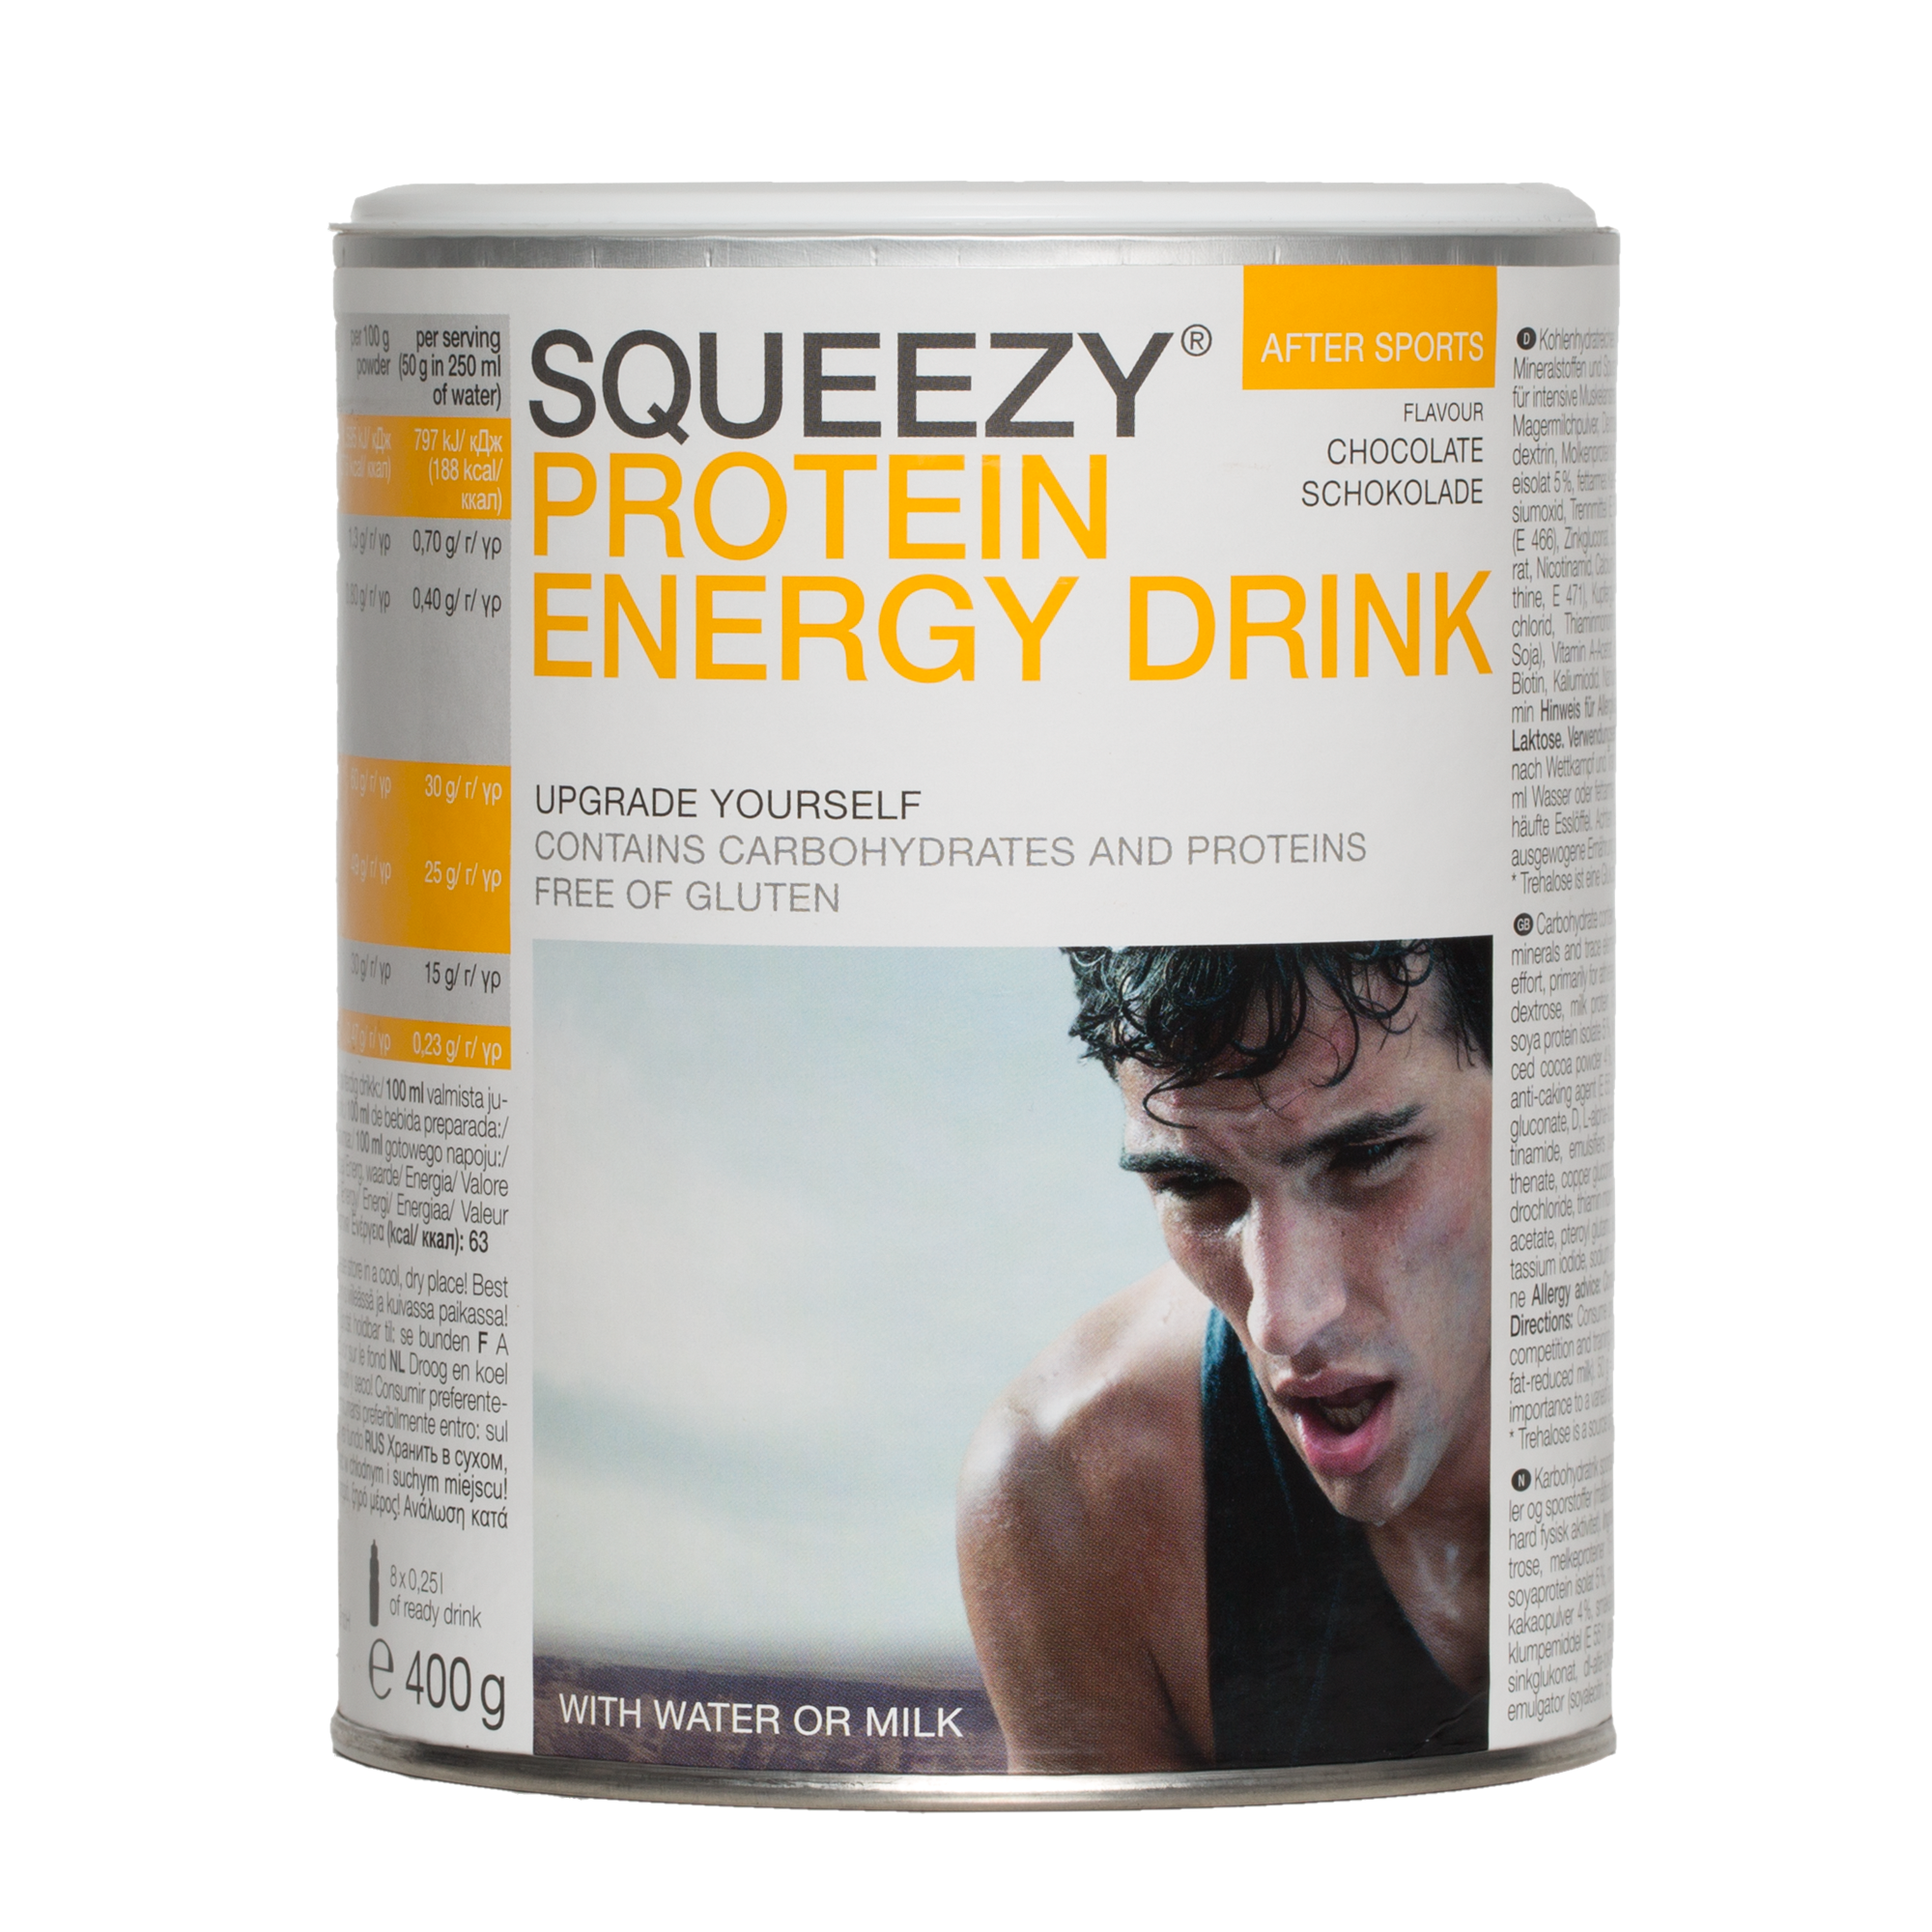 PROTEIN ENERGY DRINK